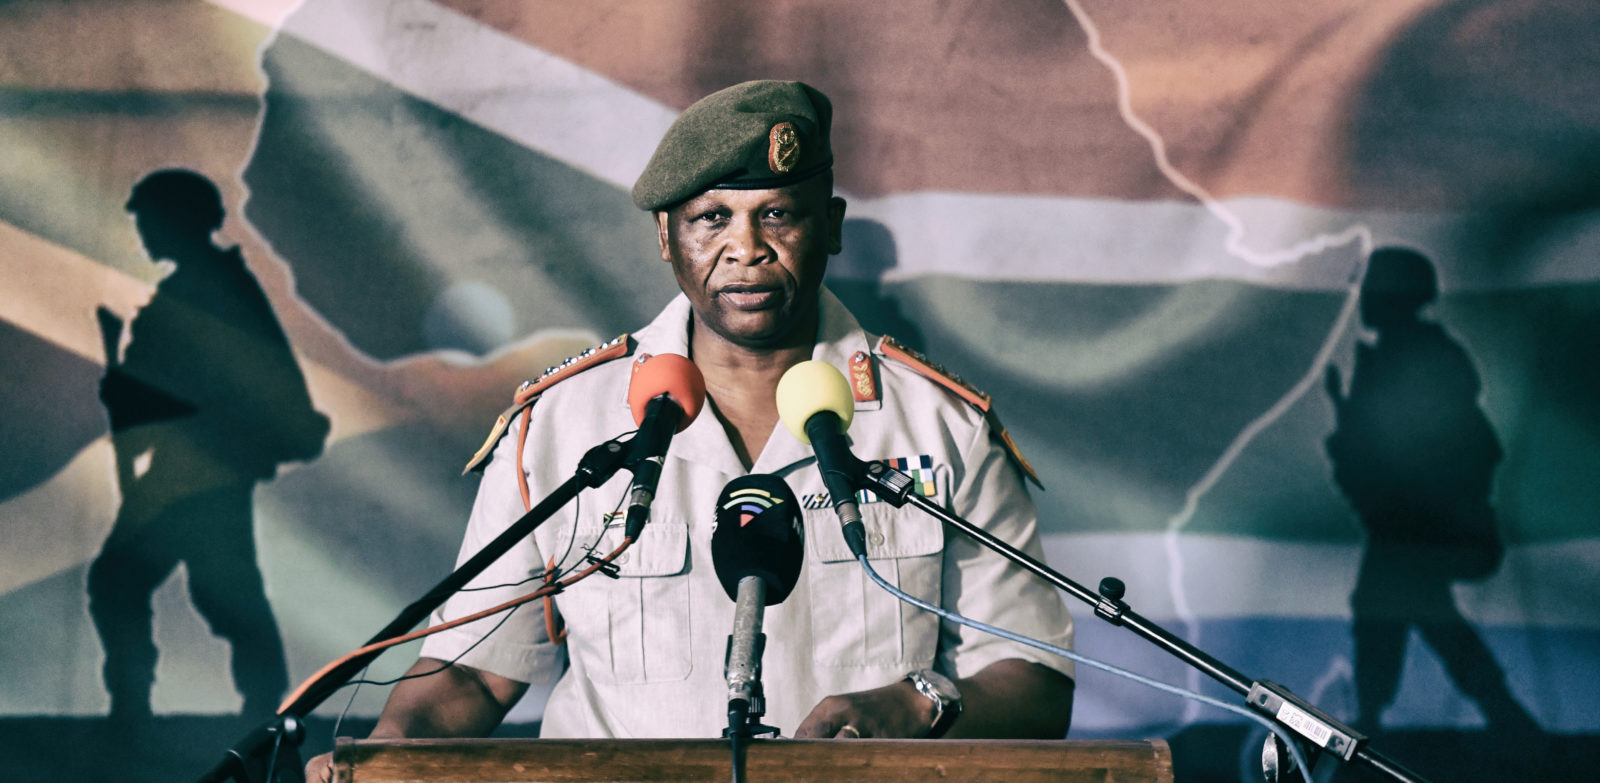 South Africa's military at a crossroads